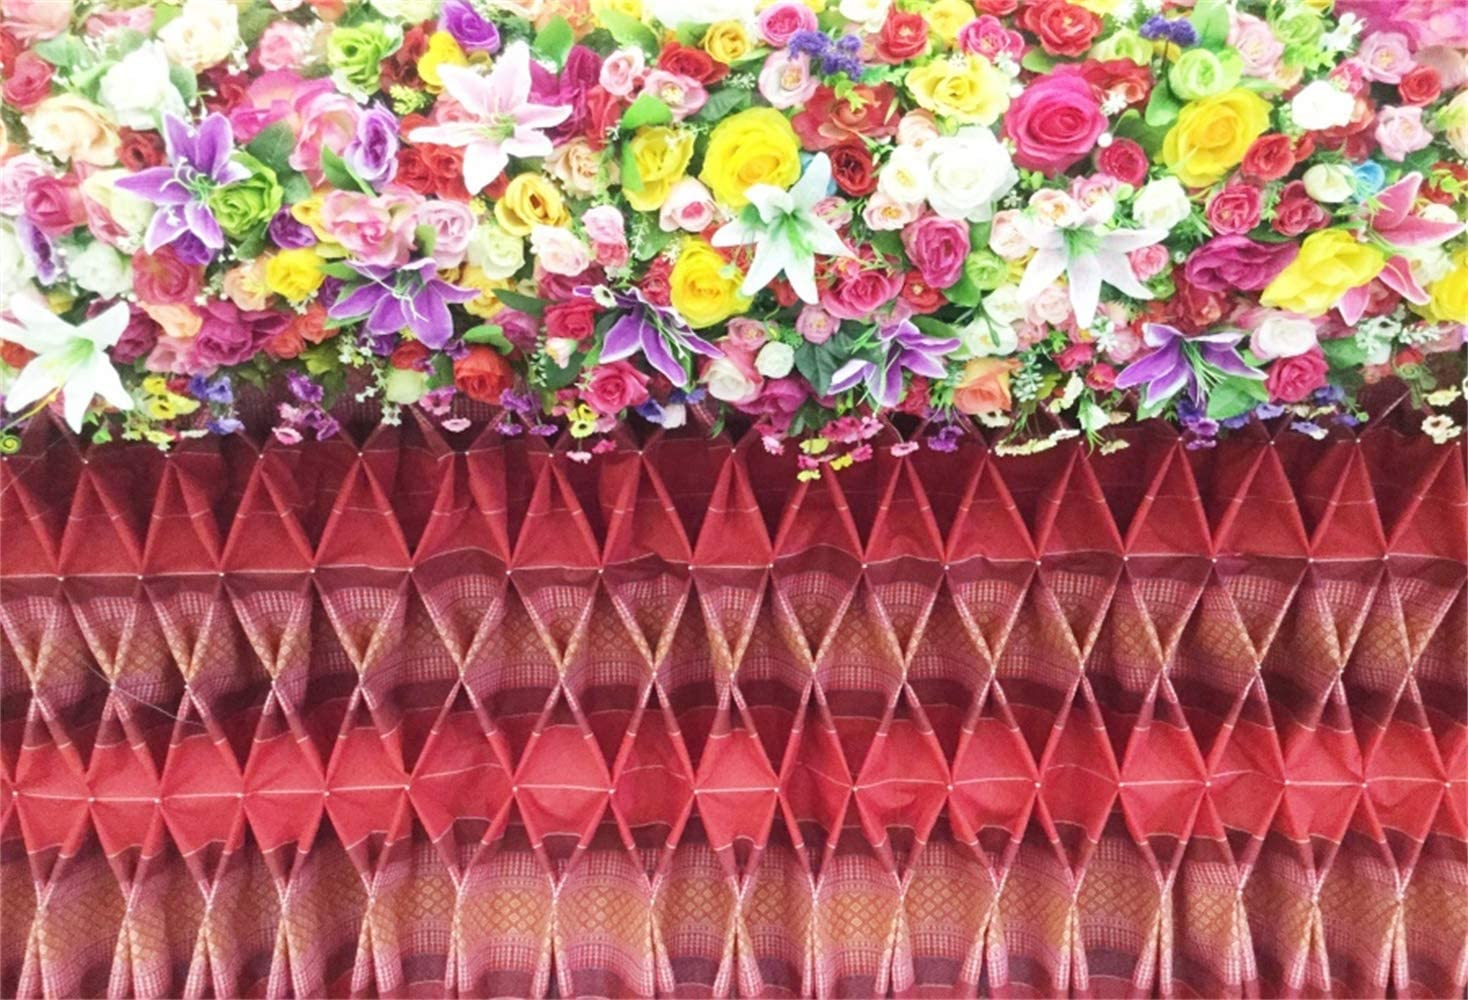 Vinyl 10x7ft Romantic Valentines Day Photography Background Colorful Flowers Edge Geometric Pattern Wall Backdrops Wedding Event Activities Banner Child Adult Lovers Couple Photo Shoot